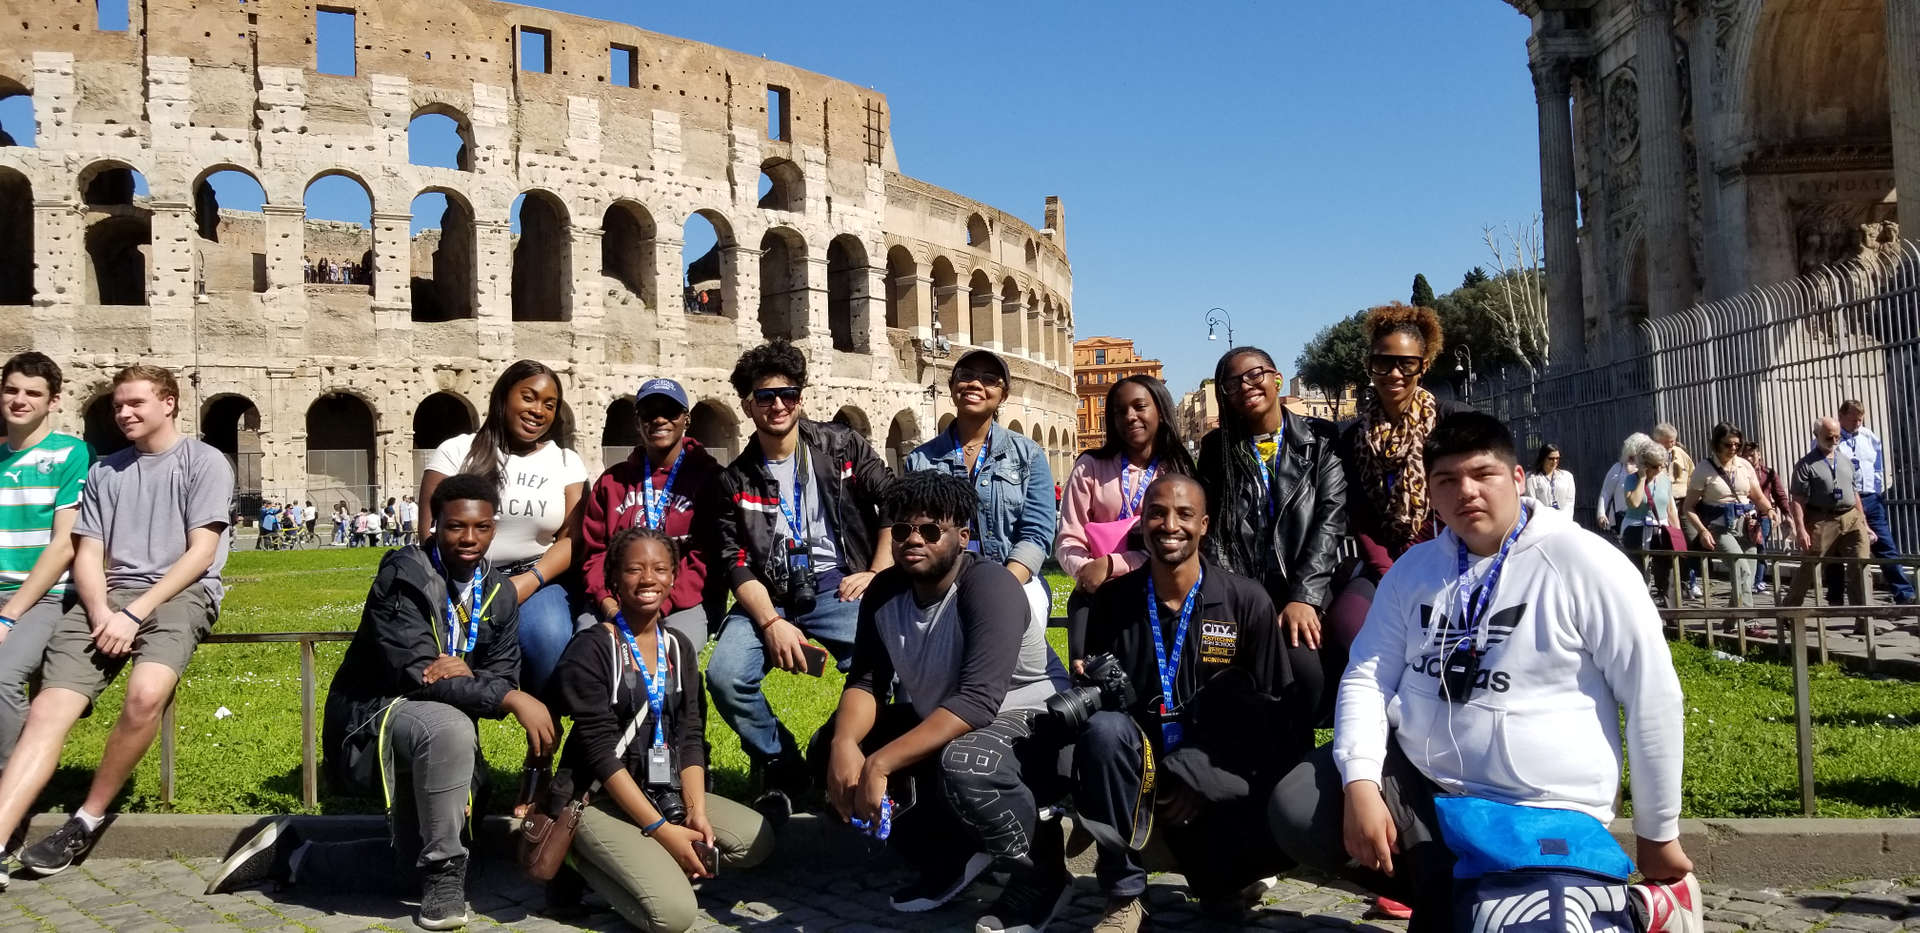 Participants posing in front of the Colosseum while on a trip to Rome